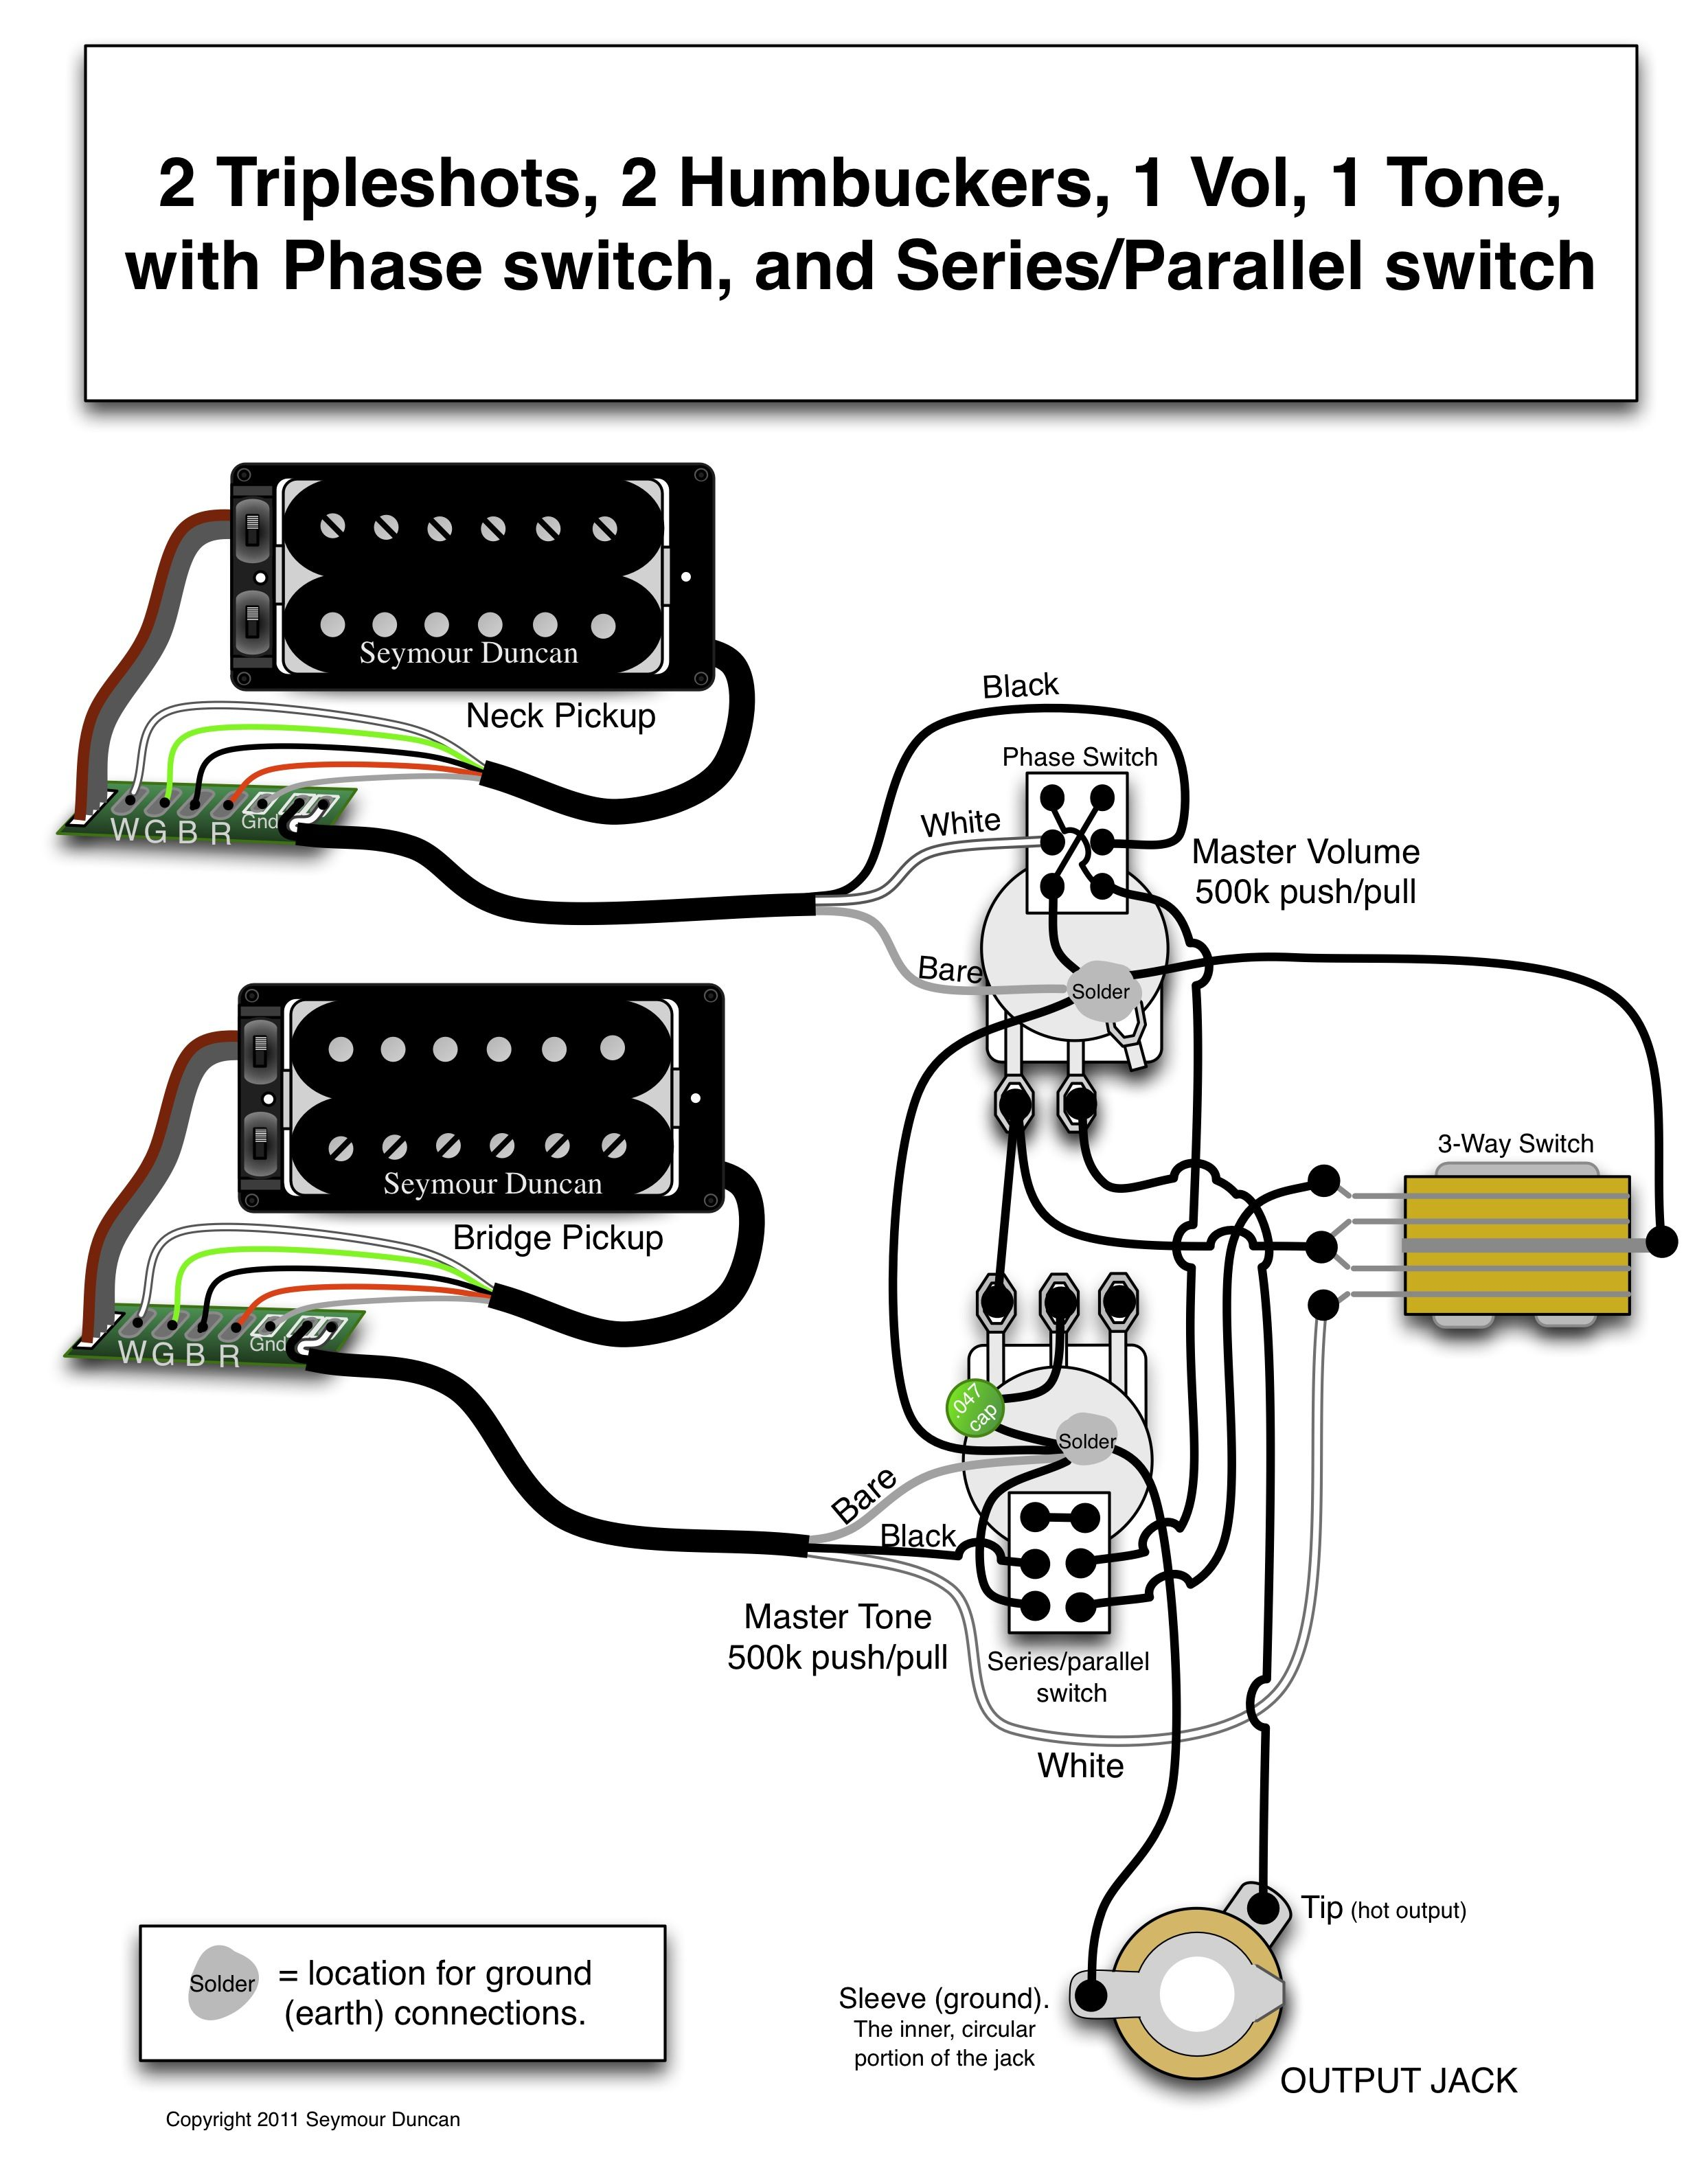 seymour duncan wiring diagram - 2 triple shots, 2 humbuckers, 1 vol with phase switch, 1 tone ... seymour duncan wiring diagrams 1 humbucker 1 volume seymour duncan wiring diagrams hss 2 tone 1 vol